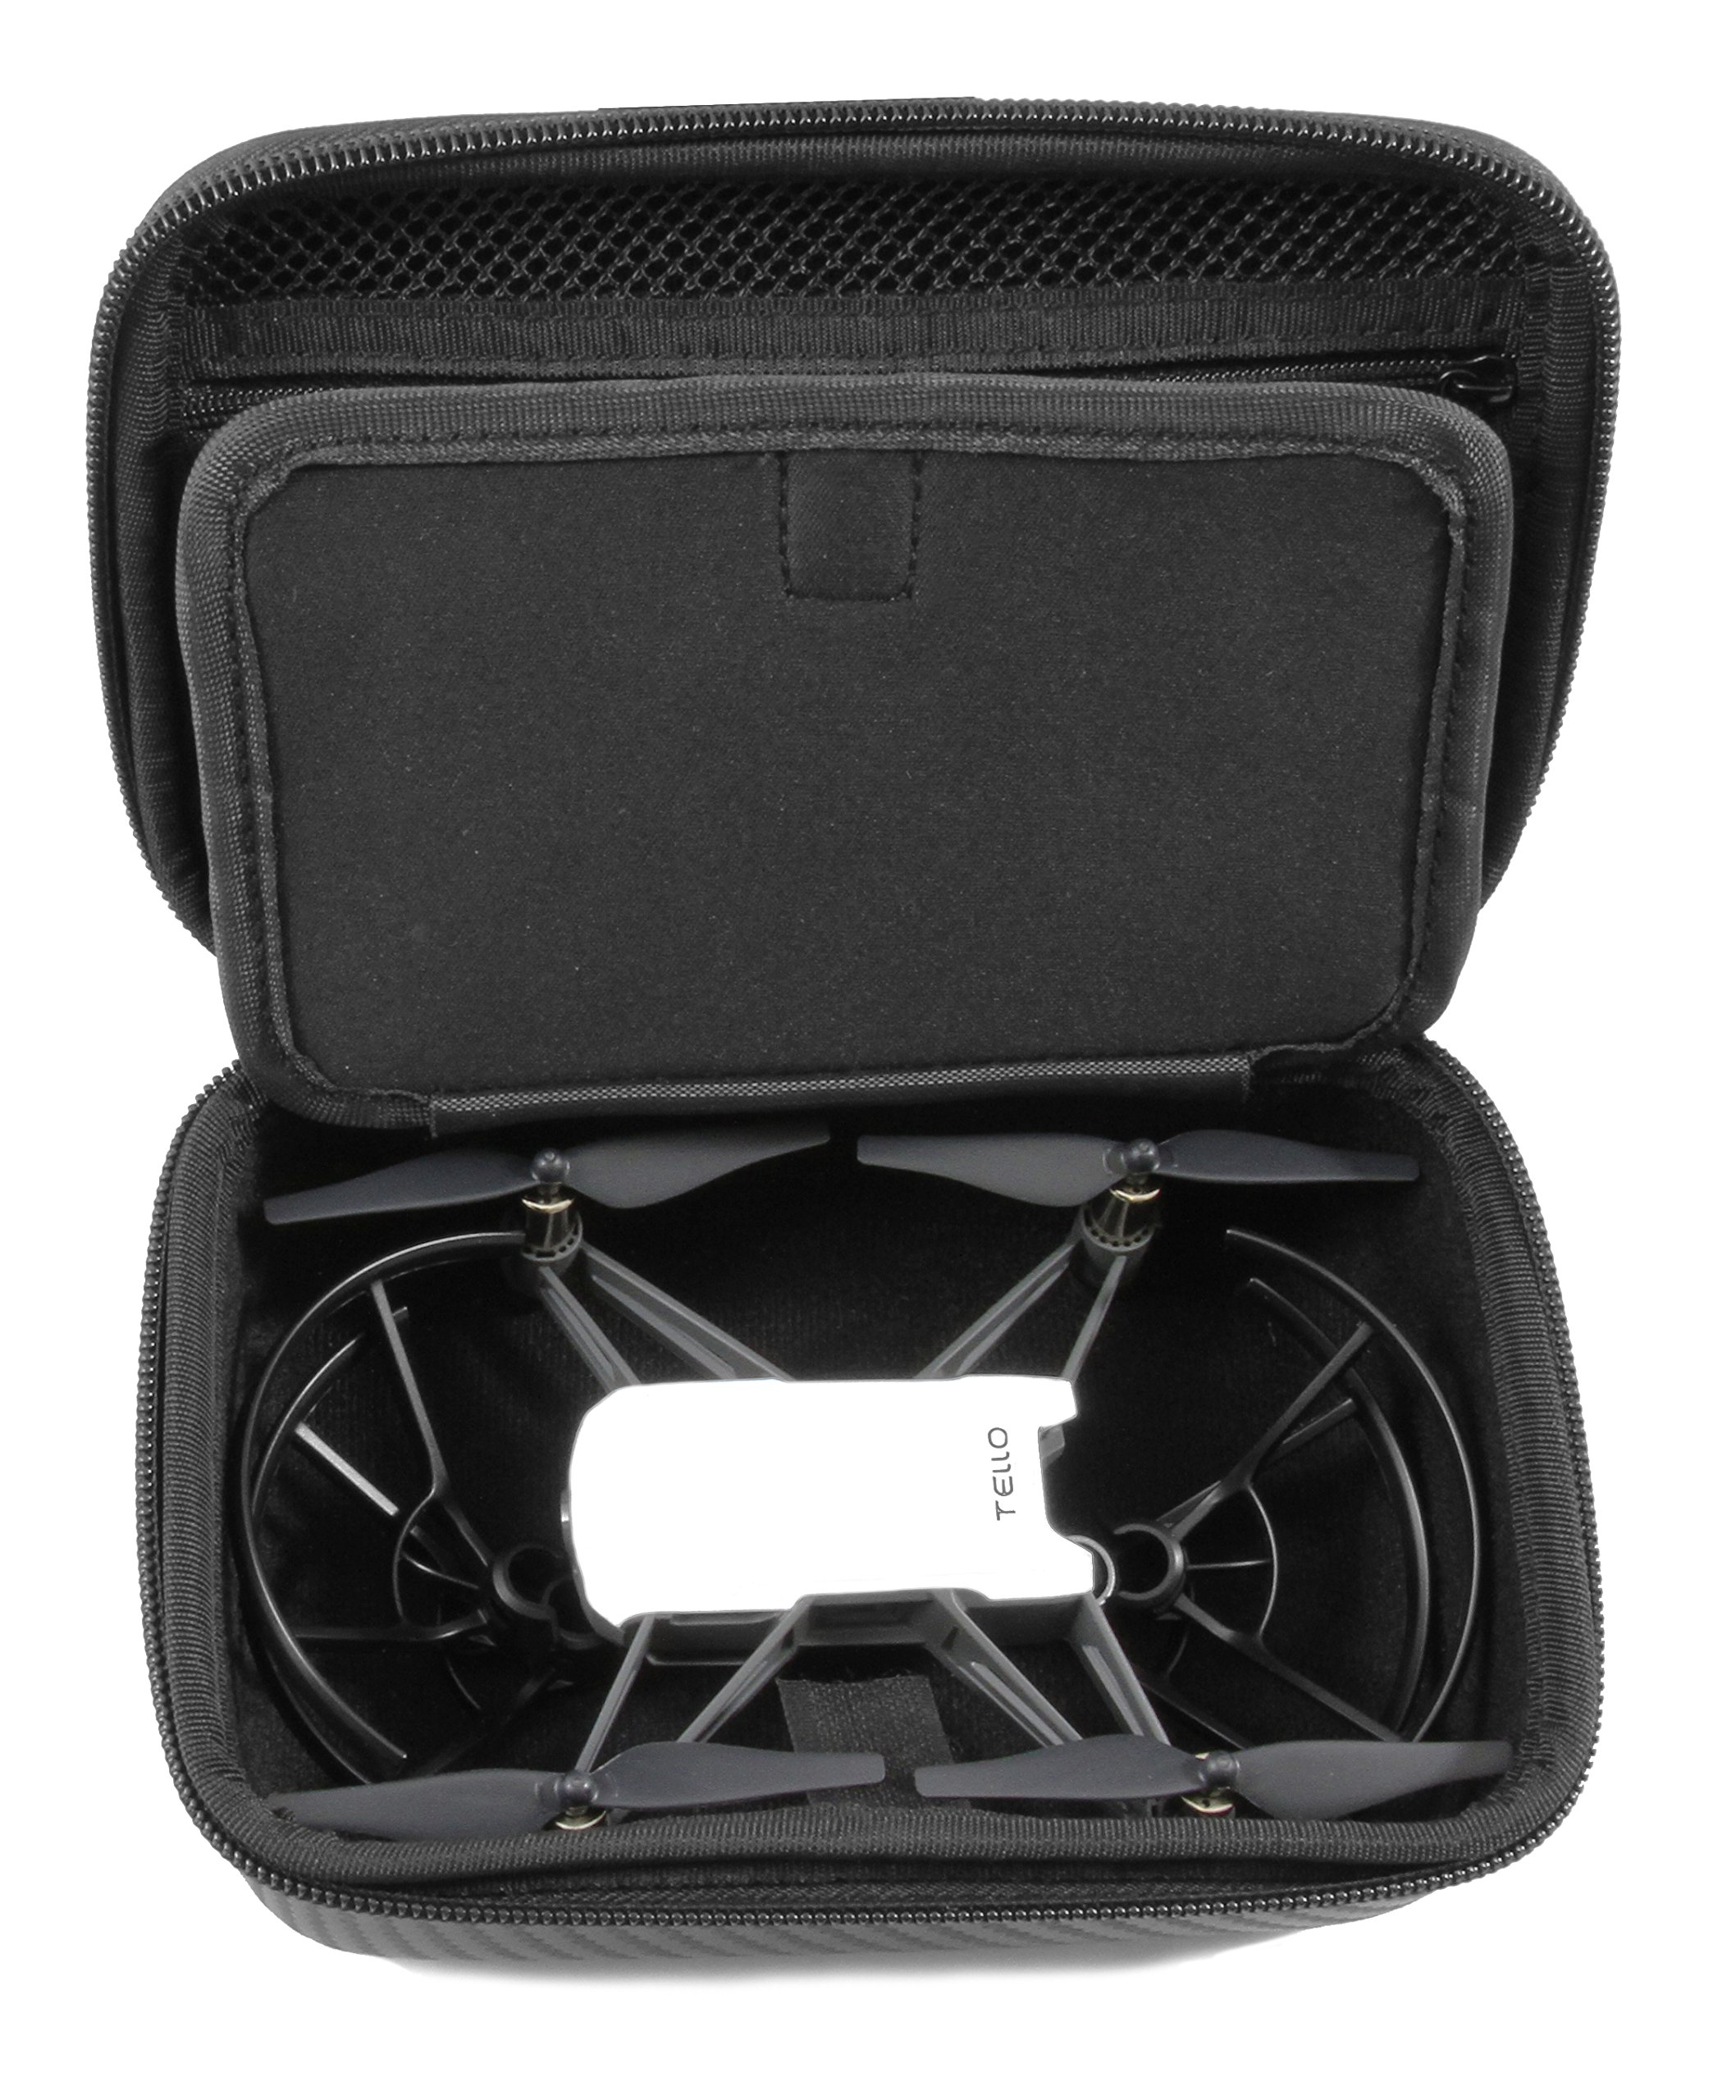 CASEMATIX Rugged EVA Travel Case For Tello Quadcopter Drone by DJI – Fits Tello Drone, Propeller Guards, Battery, USB Cable and More – PROP GUARDS MUST BE REMOVED BEFORE STORAGE